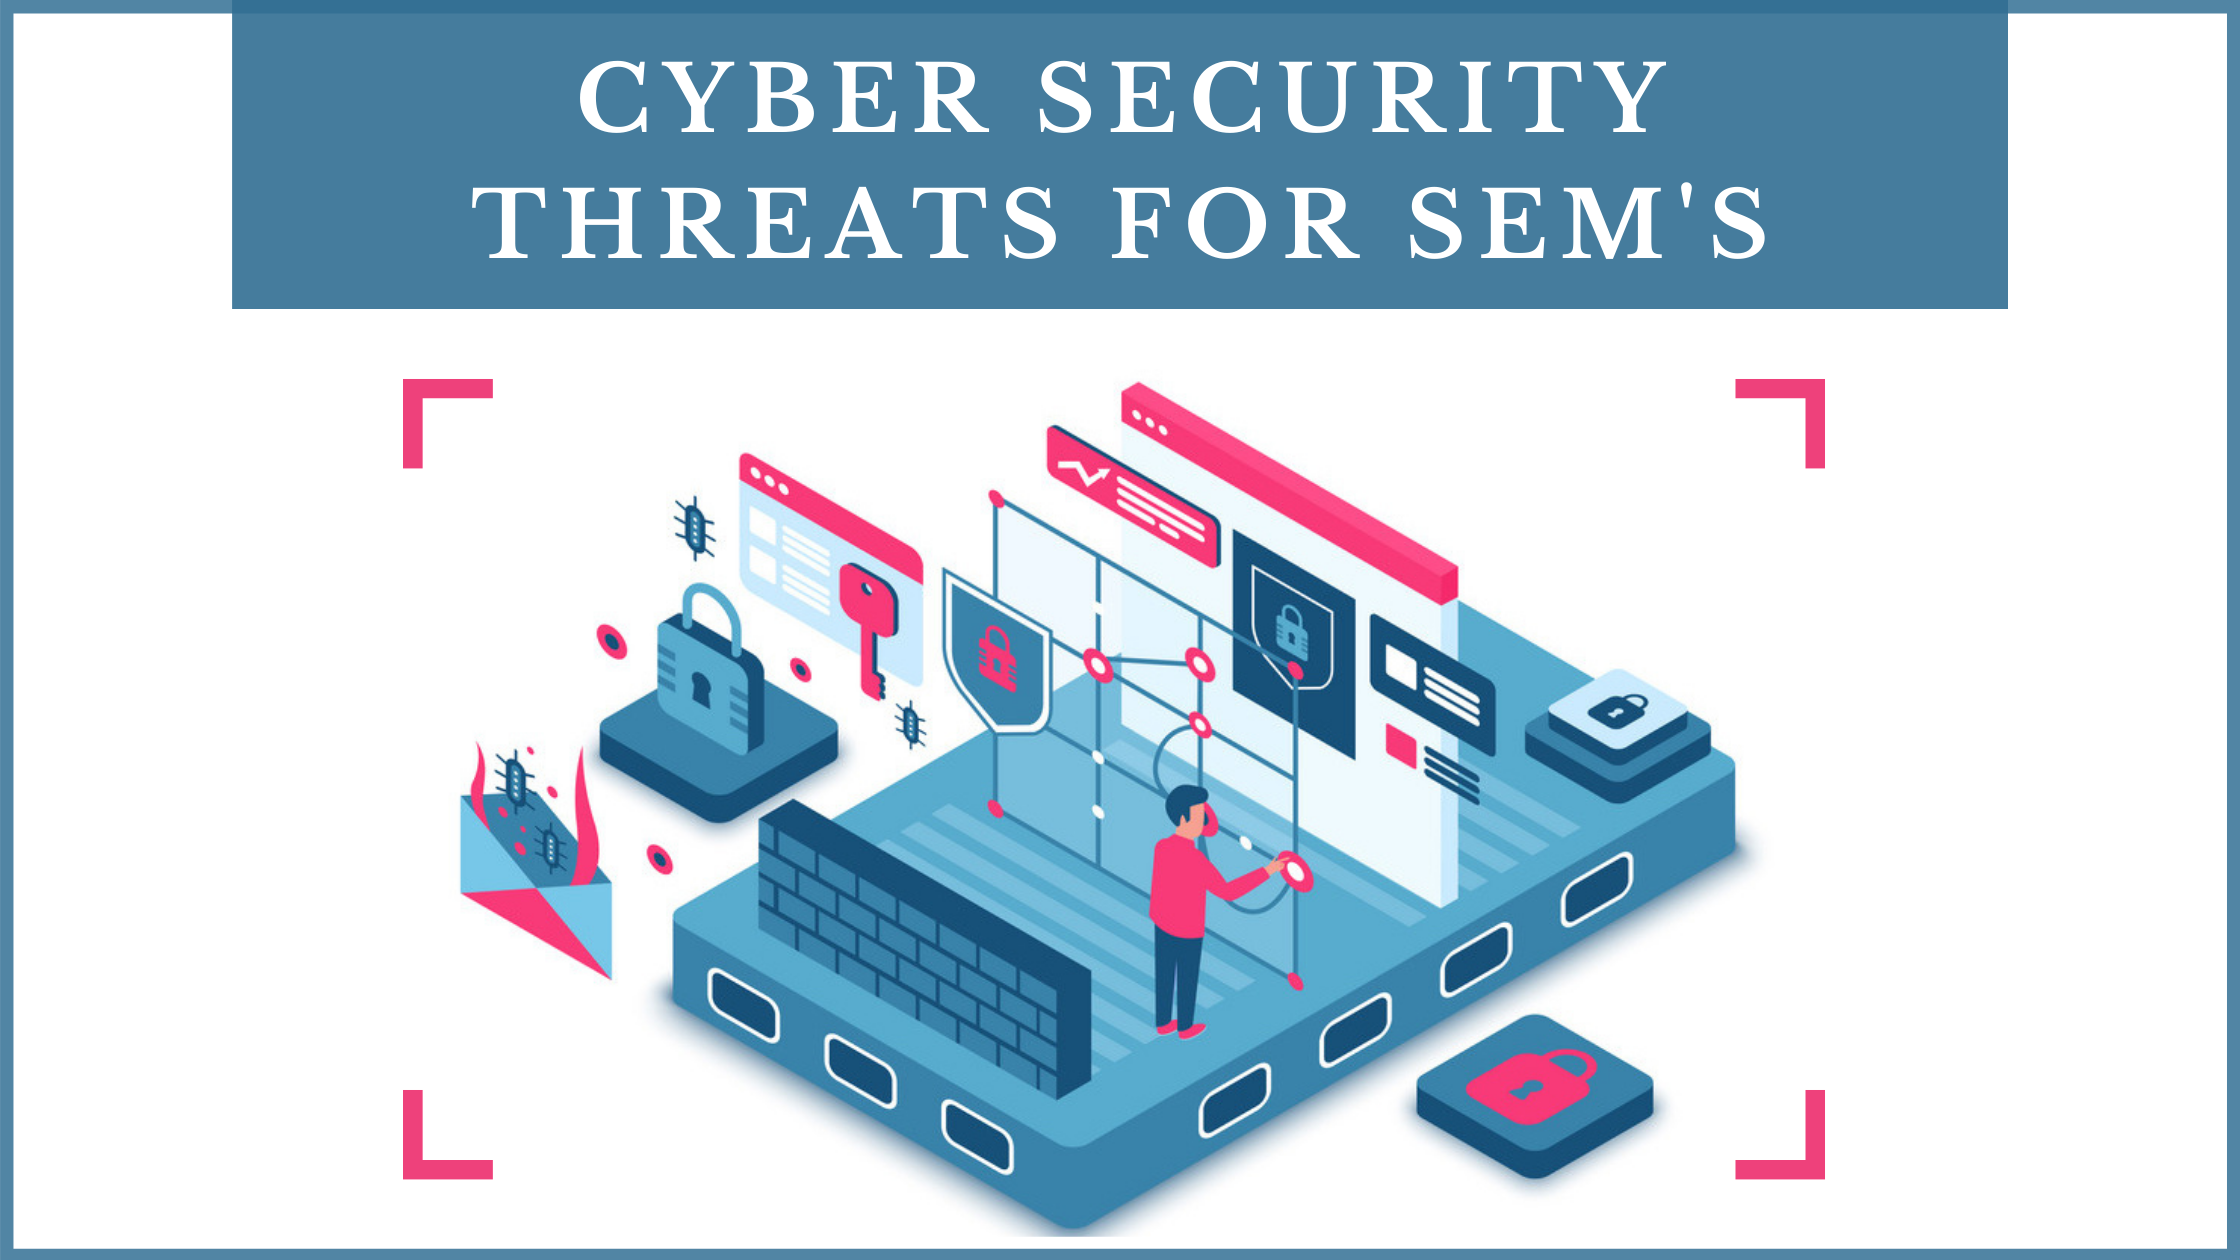 Cybersecurity threats for SMEs